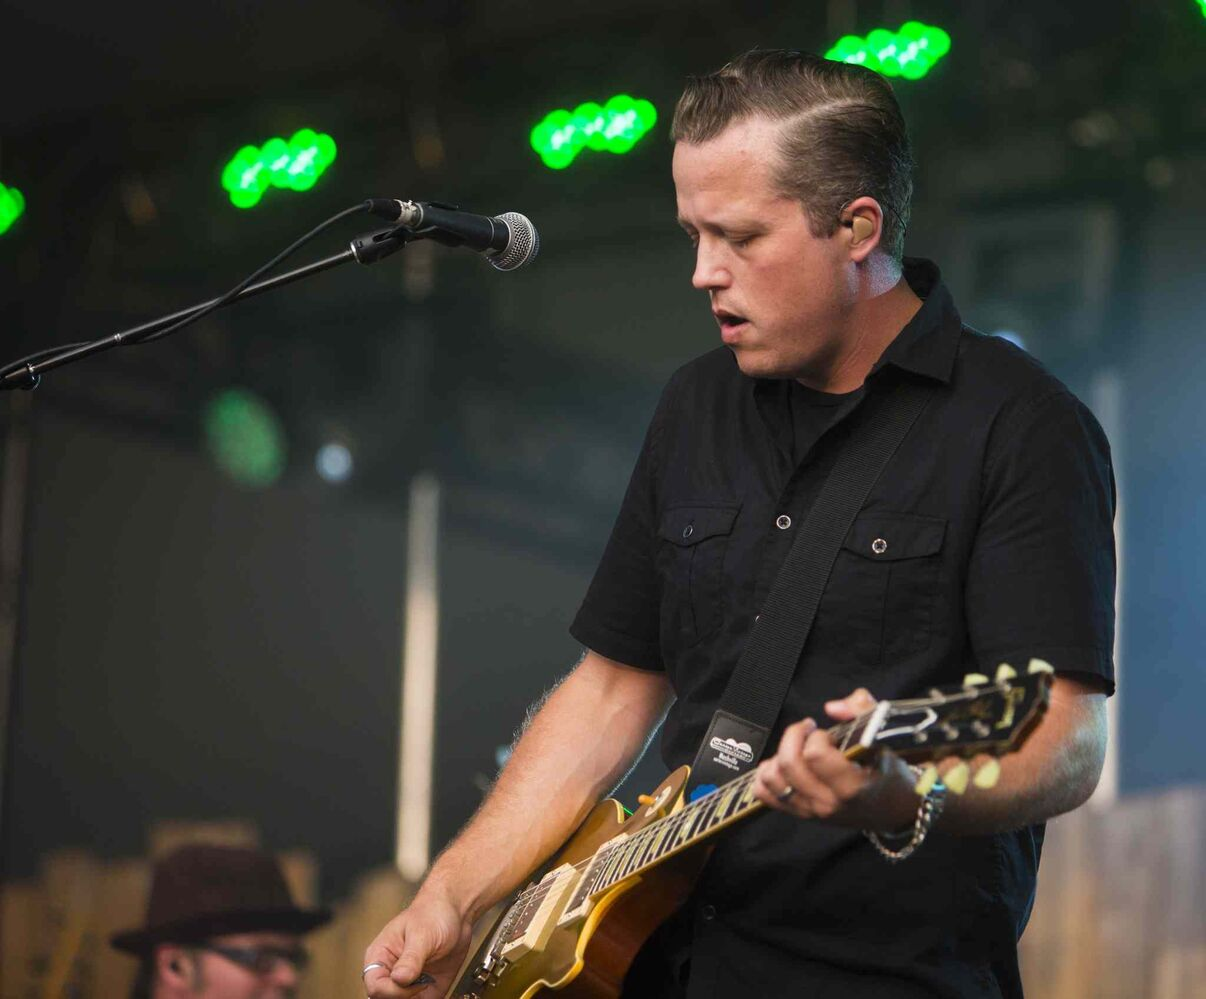 Jason Isbell plays at the Winnipeg Folk Festival in Birds Hill Park on Friday, July 10, 2015.   Mikaela MacKenzie / Winnipeg Free Press (Winnipeg Free Press)